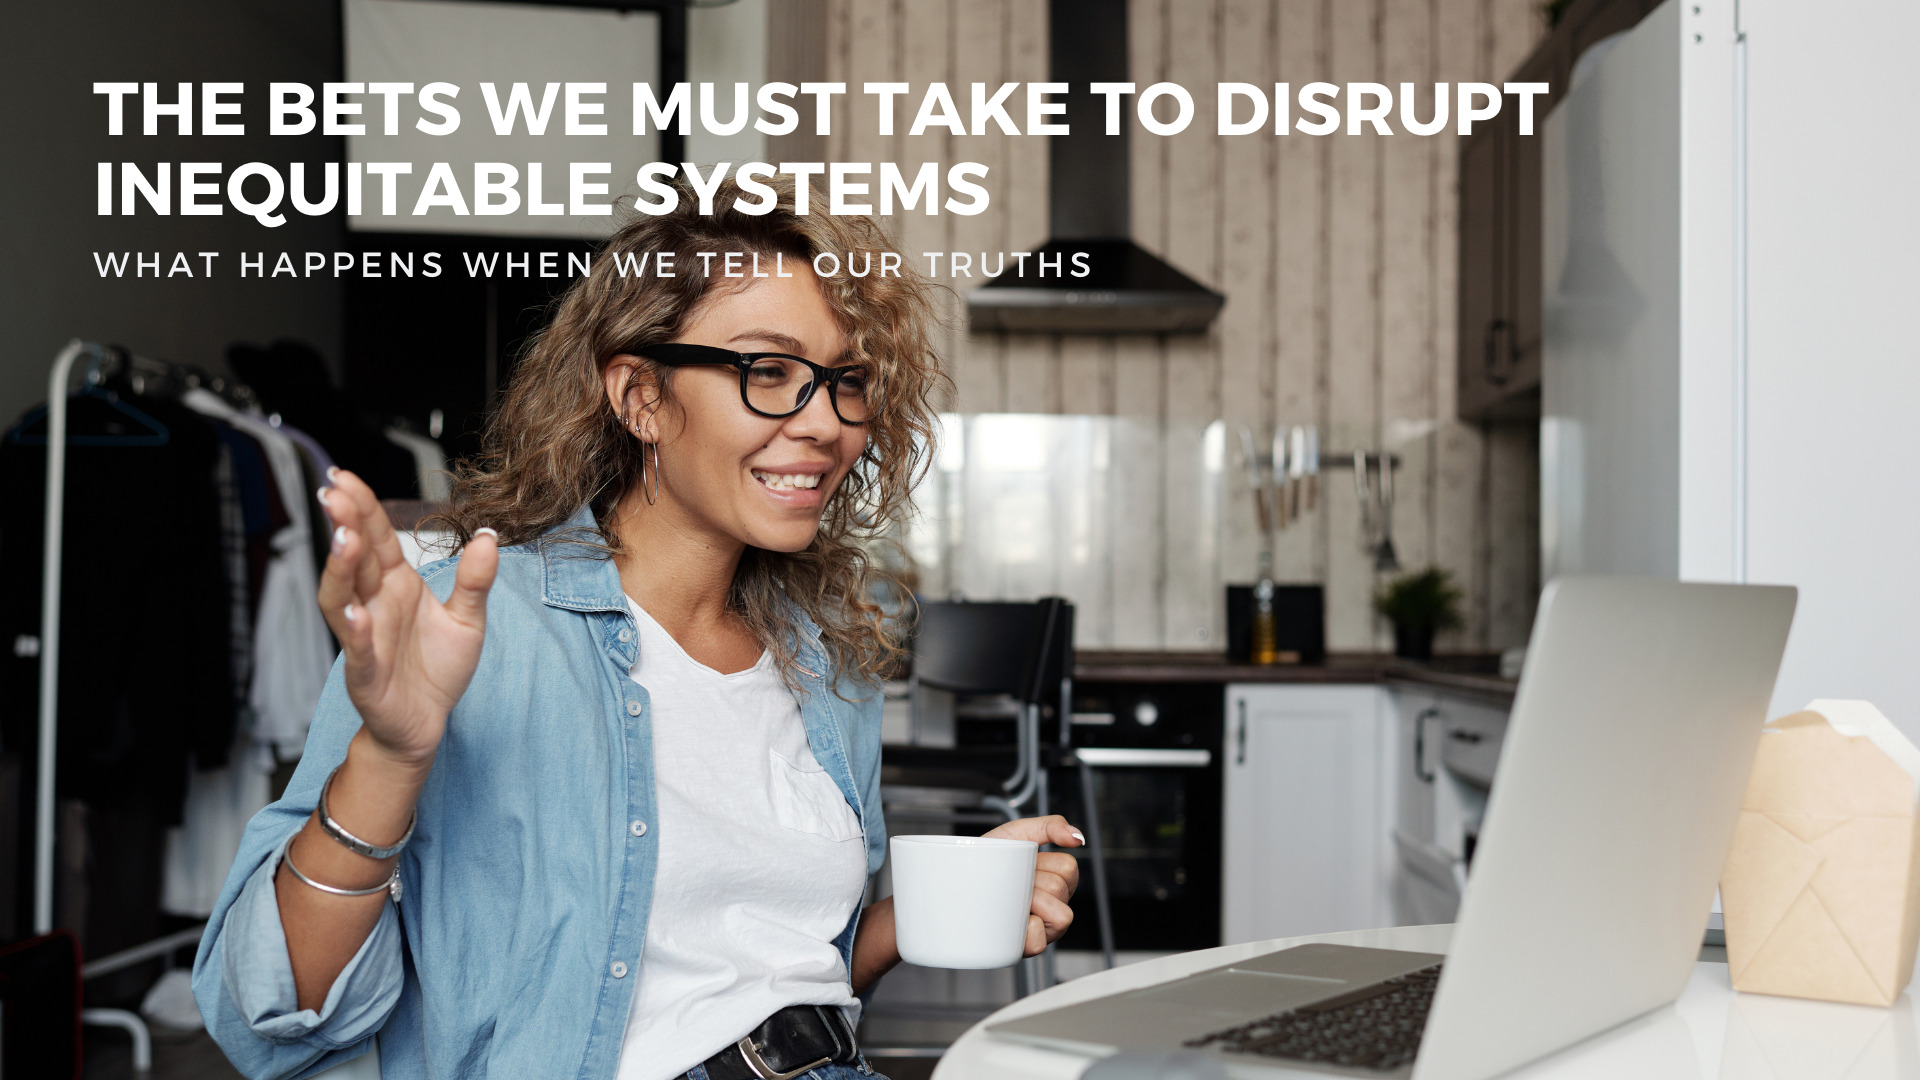 The Bets We Must Take to Disrupt Inequitable Systems